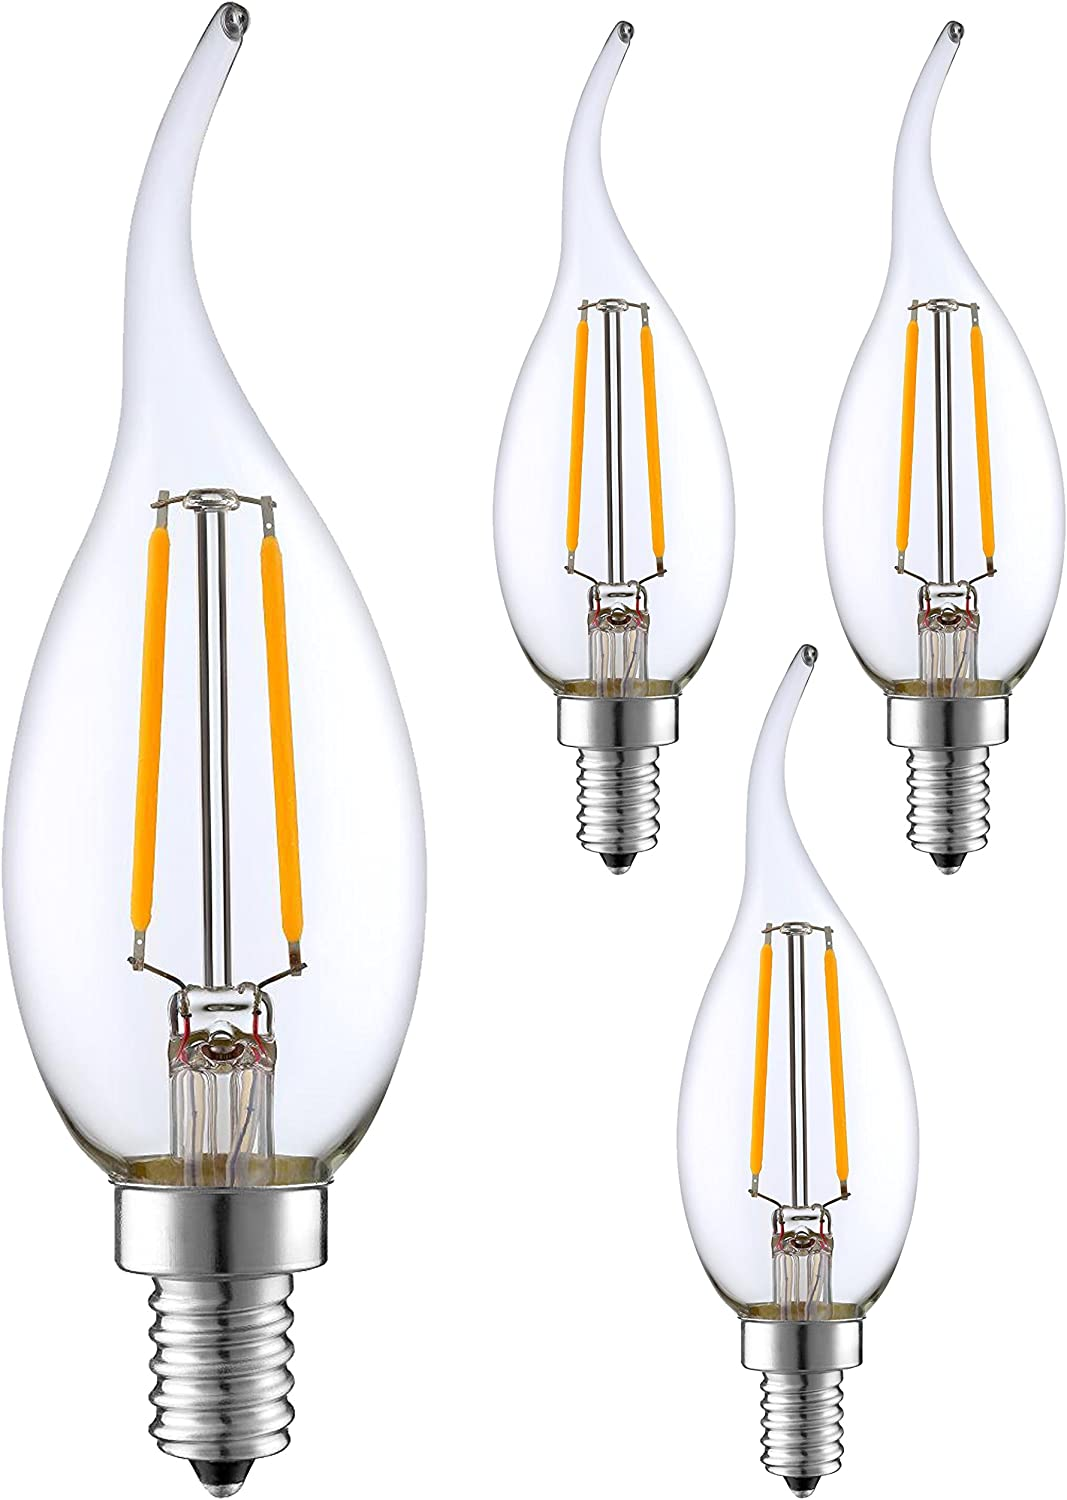 Warm White 2700K Chandelier Decorative Torpedo Tip 25W Incandescent Replacement 4pack Frosted Glass Cover SleekLighting 2 Watt E12 LED Filament Candelabra Dimmable Light Bulb